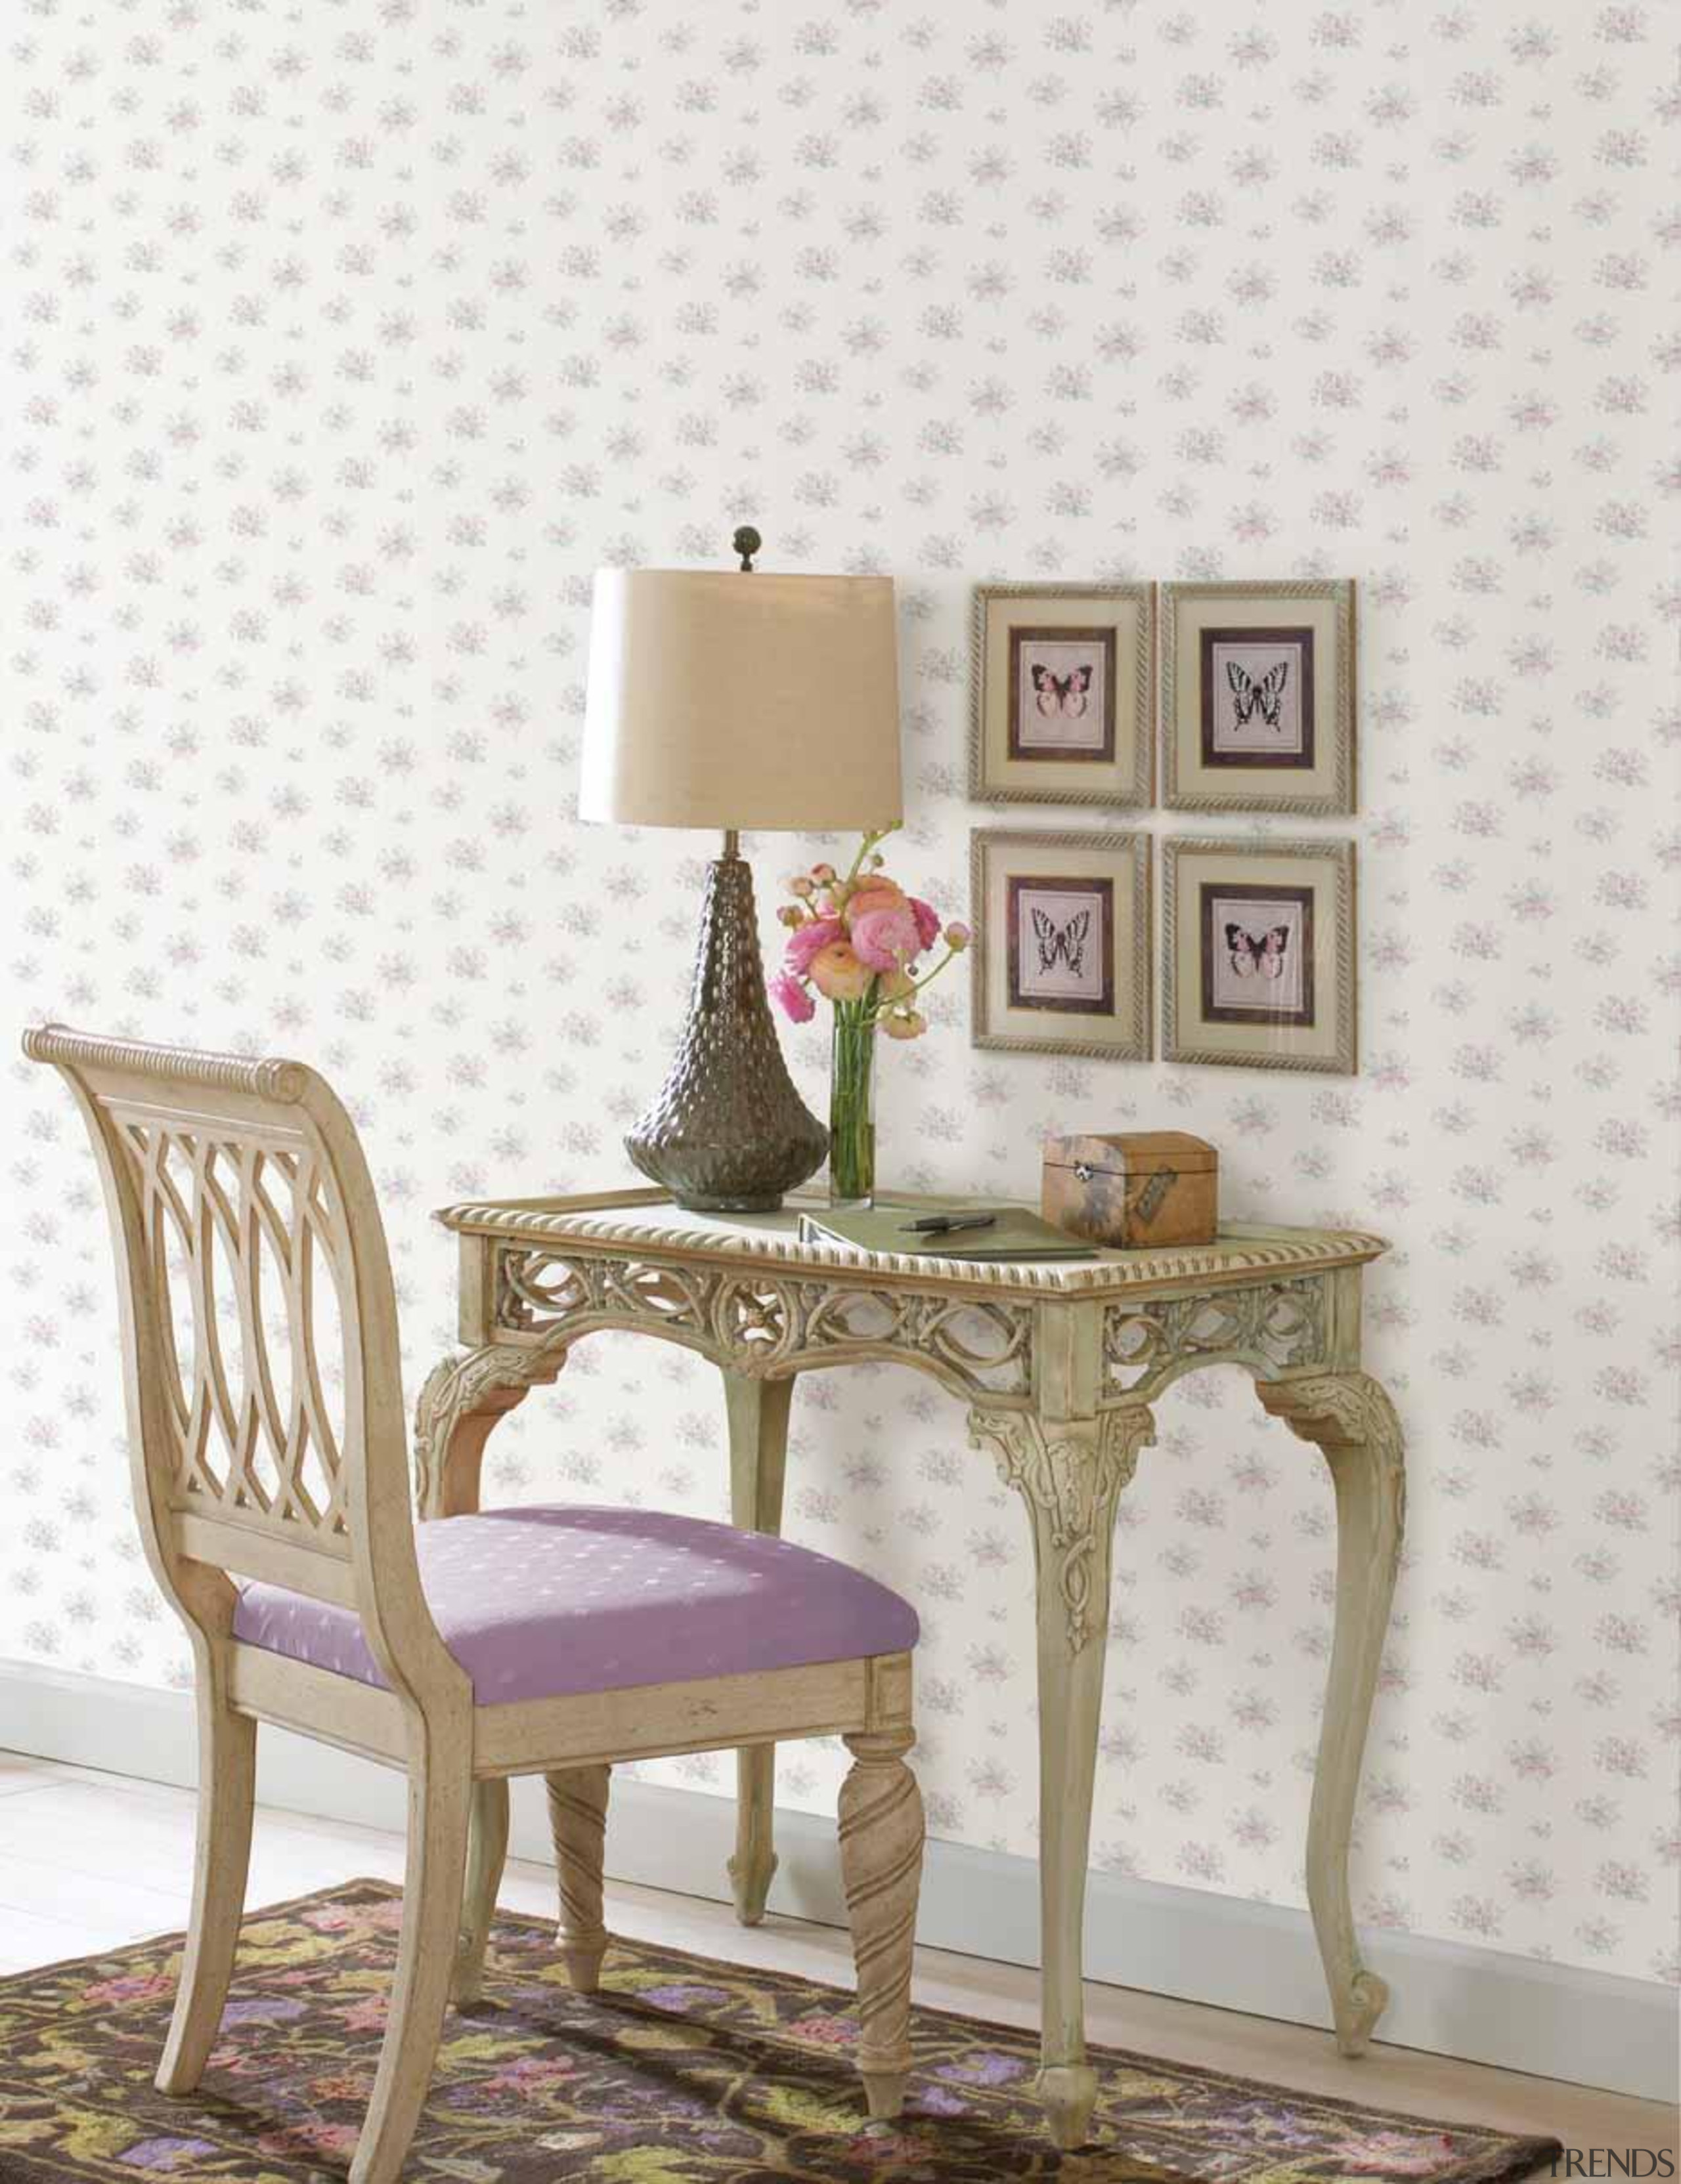 Modern Style Range - chair | furniture | chair, furniture, interior design, pink, product design, table, wall, white